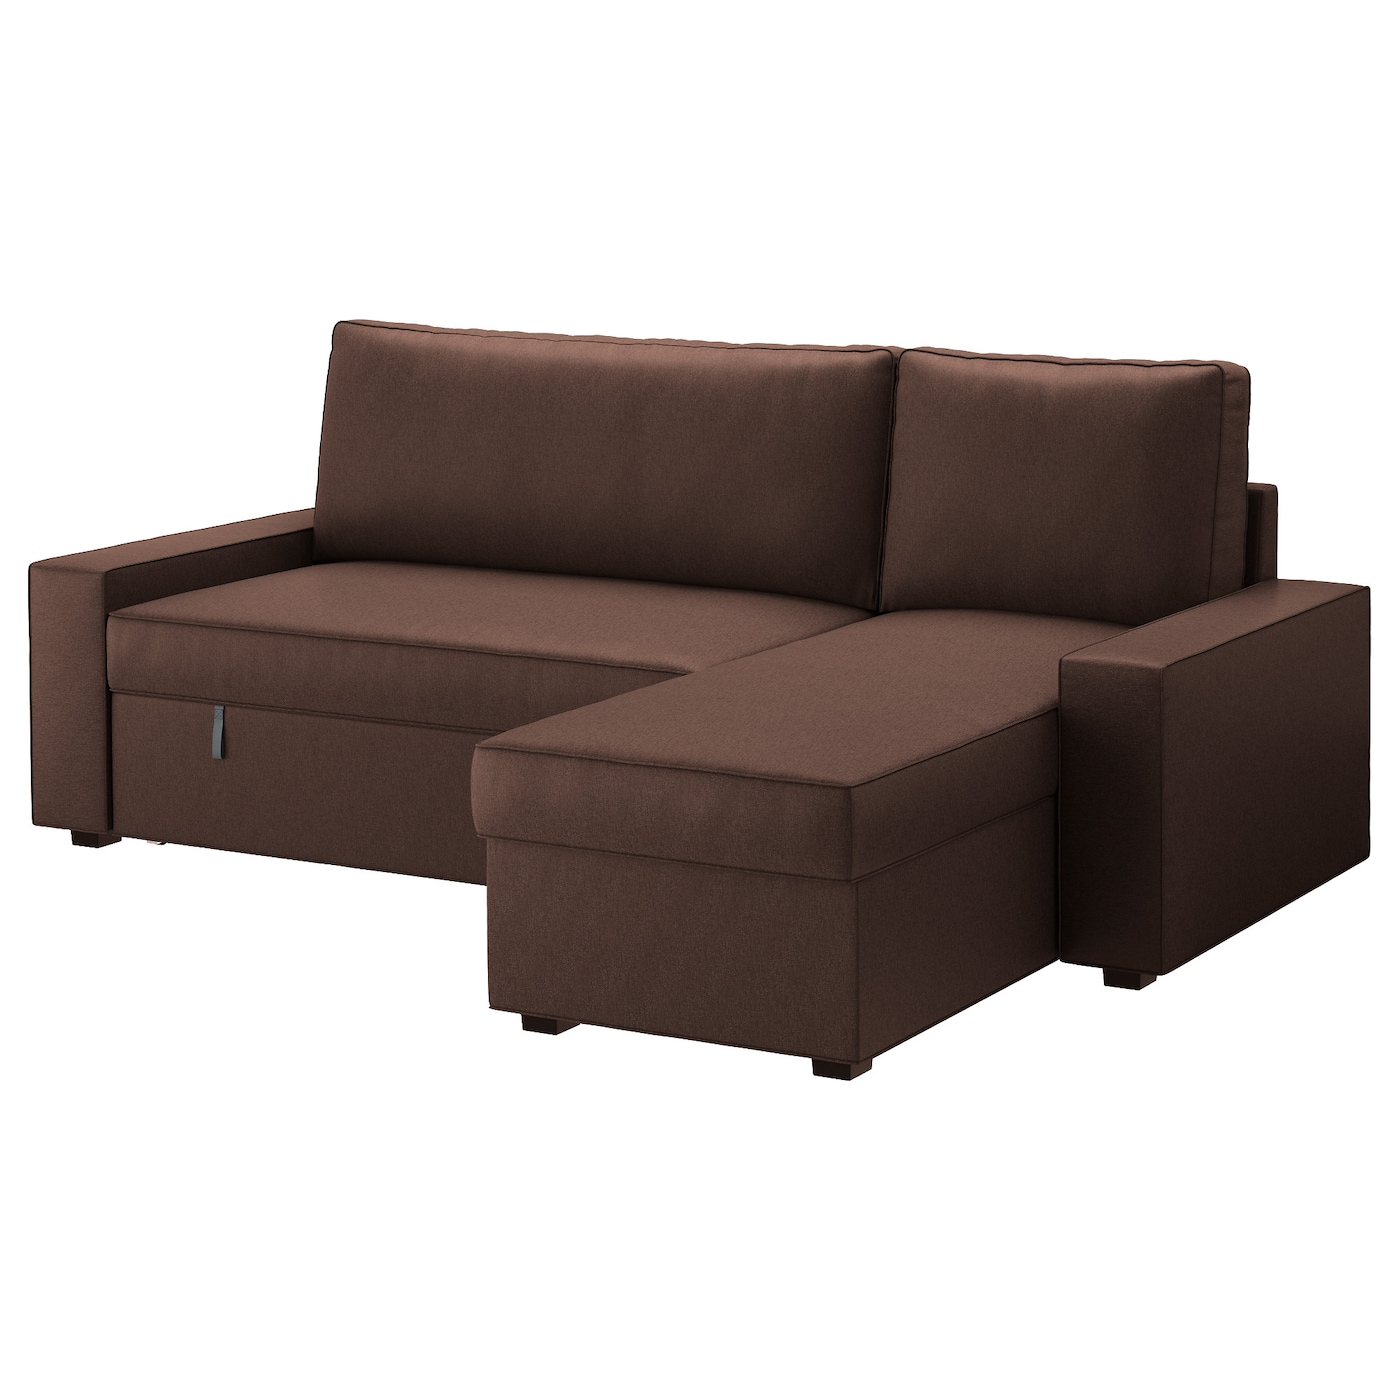 Vilasund sofa bed with chaise longue borred dark brown ikea for Chaise 65 cm ikea